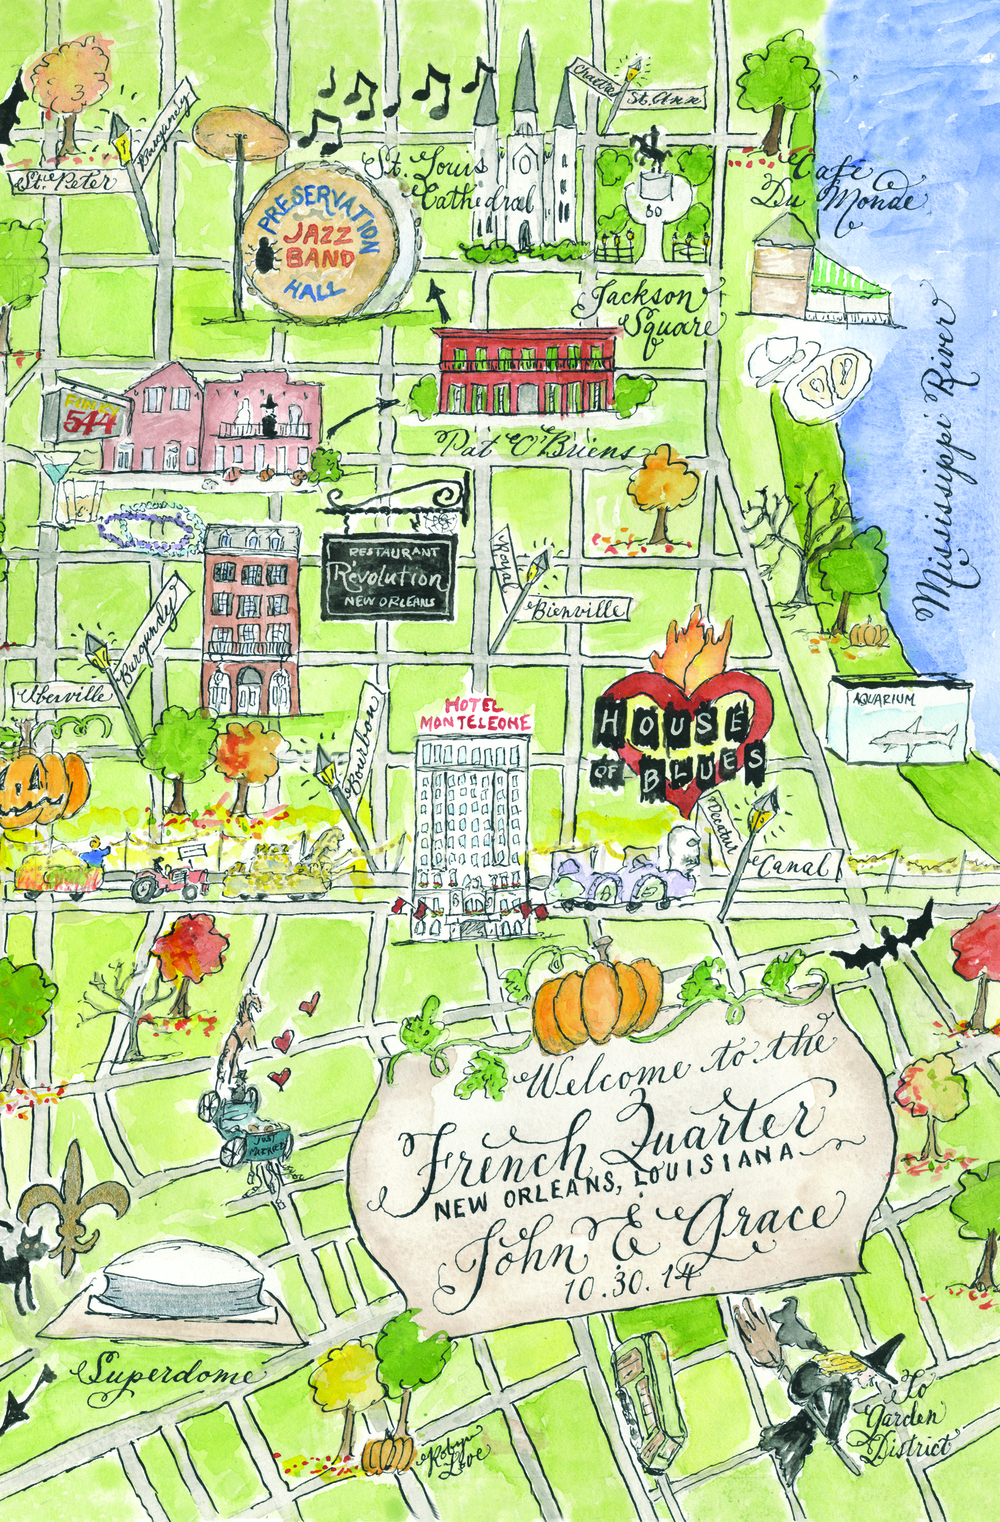 John and Grace New Orleans wedding map by Robyn Love